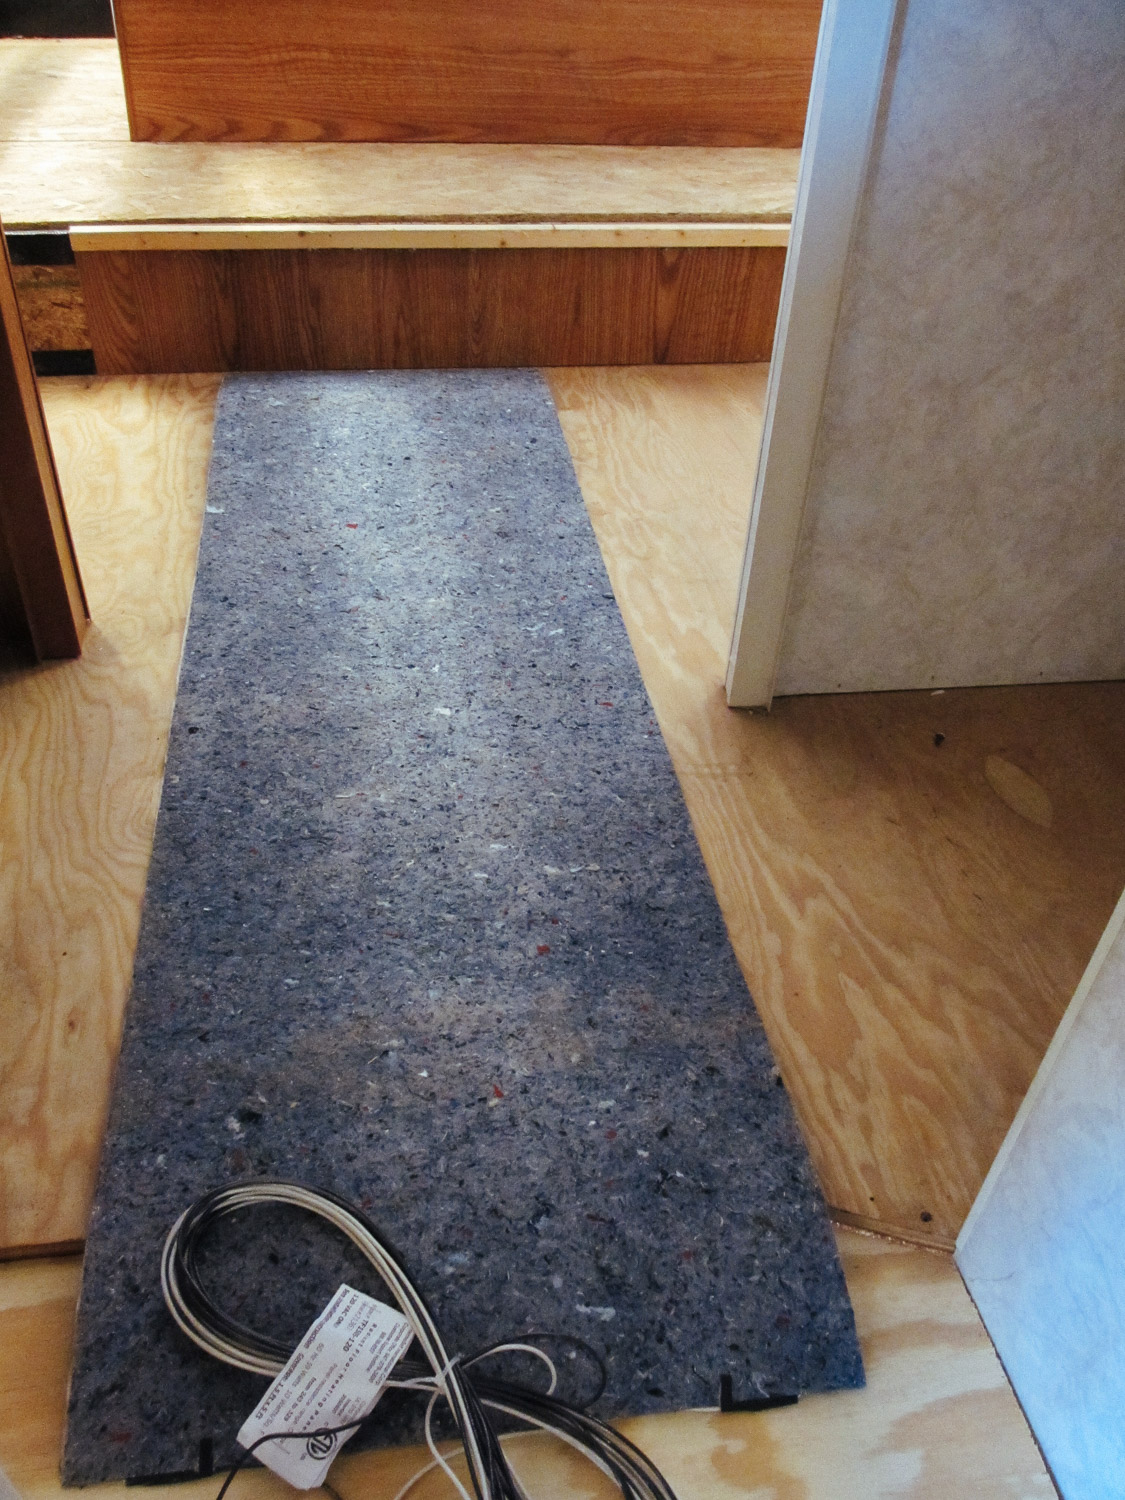 We had to extend the floor in the bedroom/bathroom hallway so it could fit a 5 ft. long piece of floor heating pad.